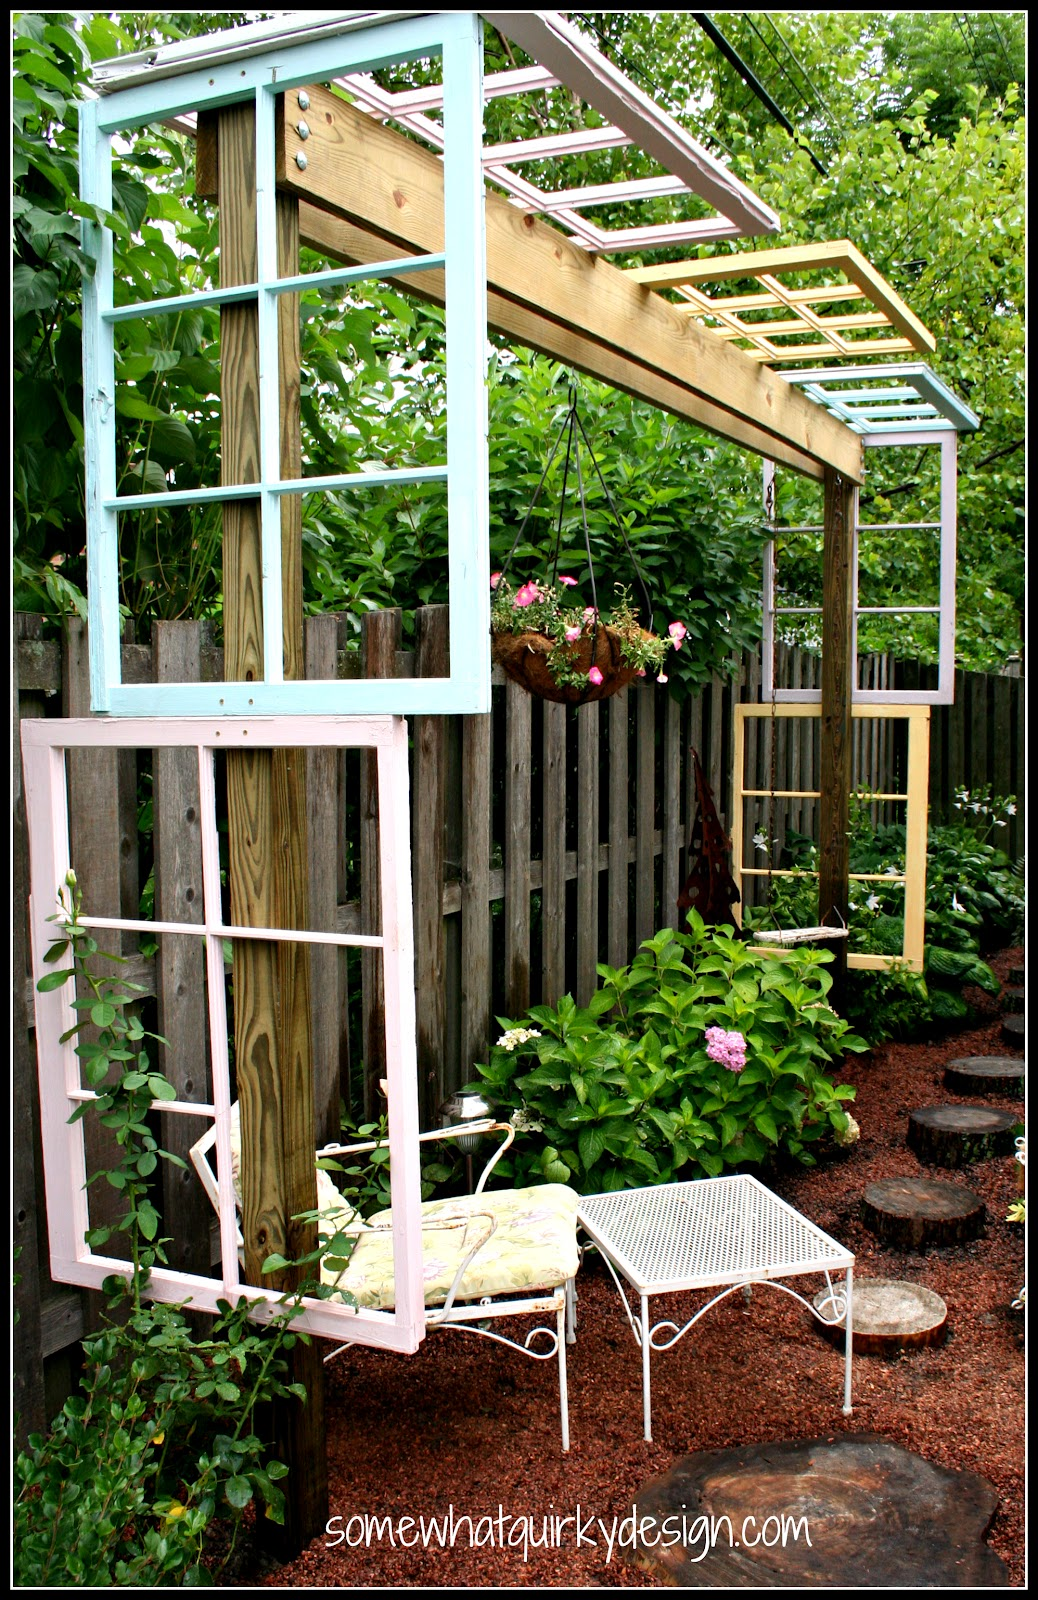 Somewhat Quirky Building A Modified Pergola With Recycled